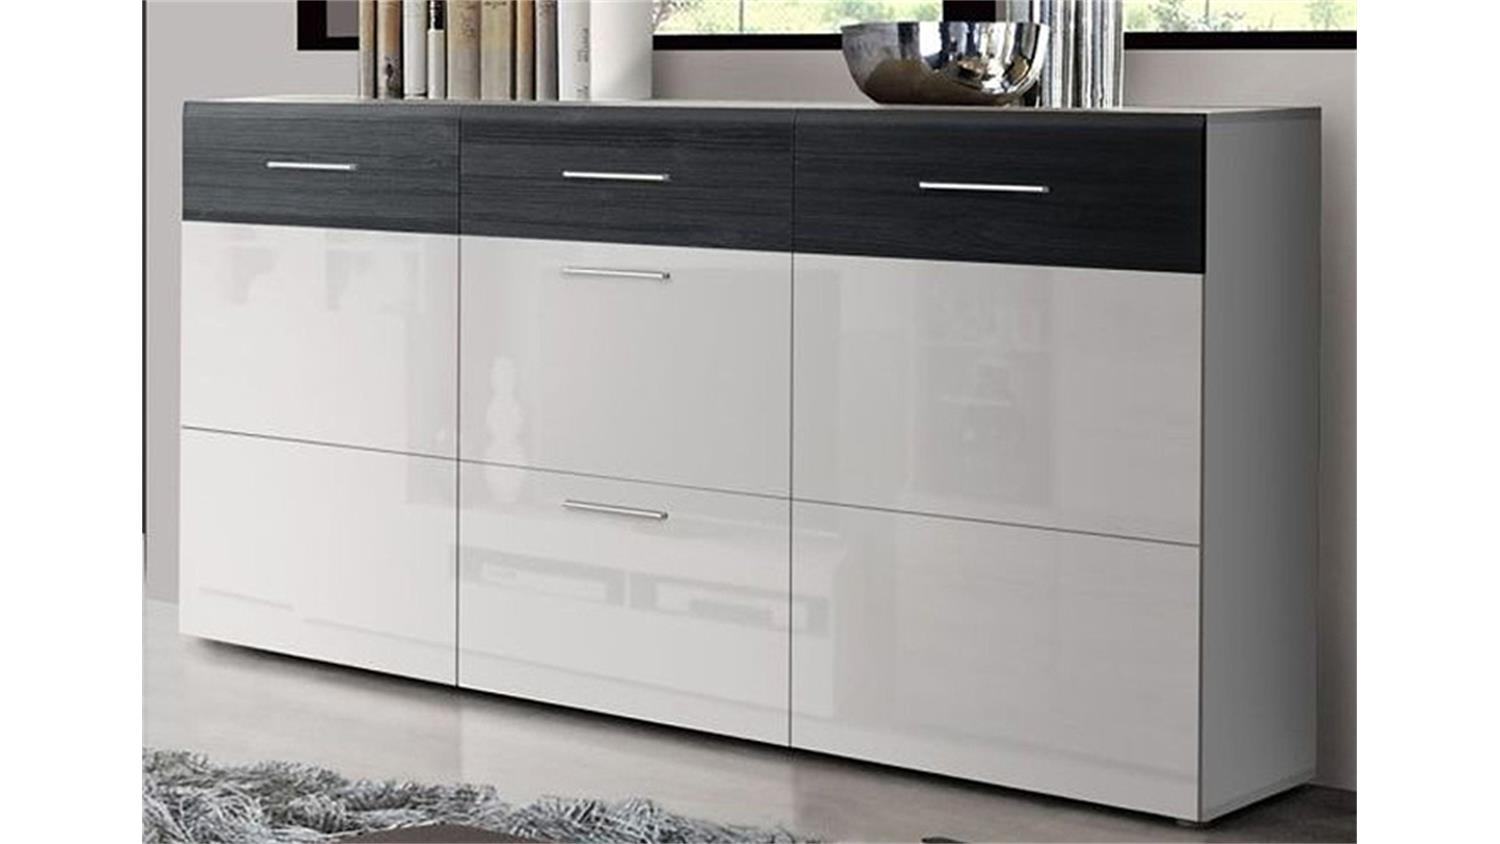 kommode hochglanz schwarz weiss das beste aus wohndesign und m bel inspiration. Black Bedroom Furniture Sets. Home Design Ideas